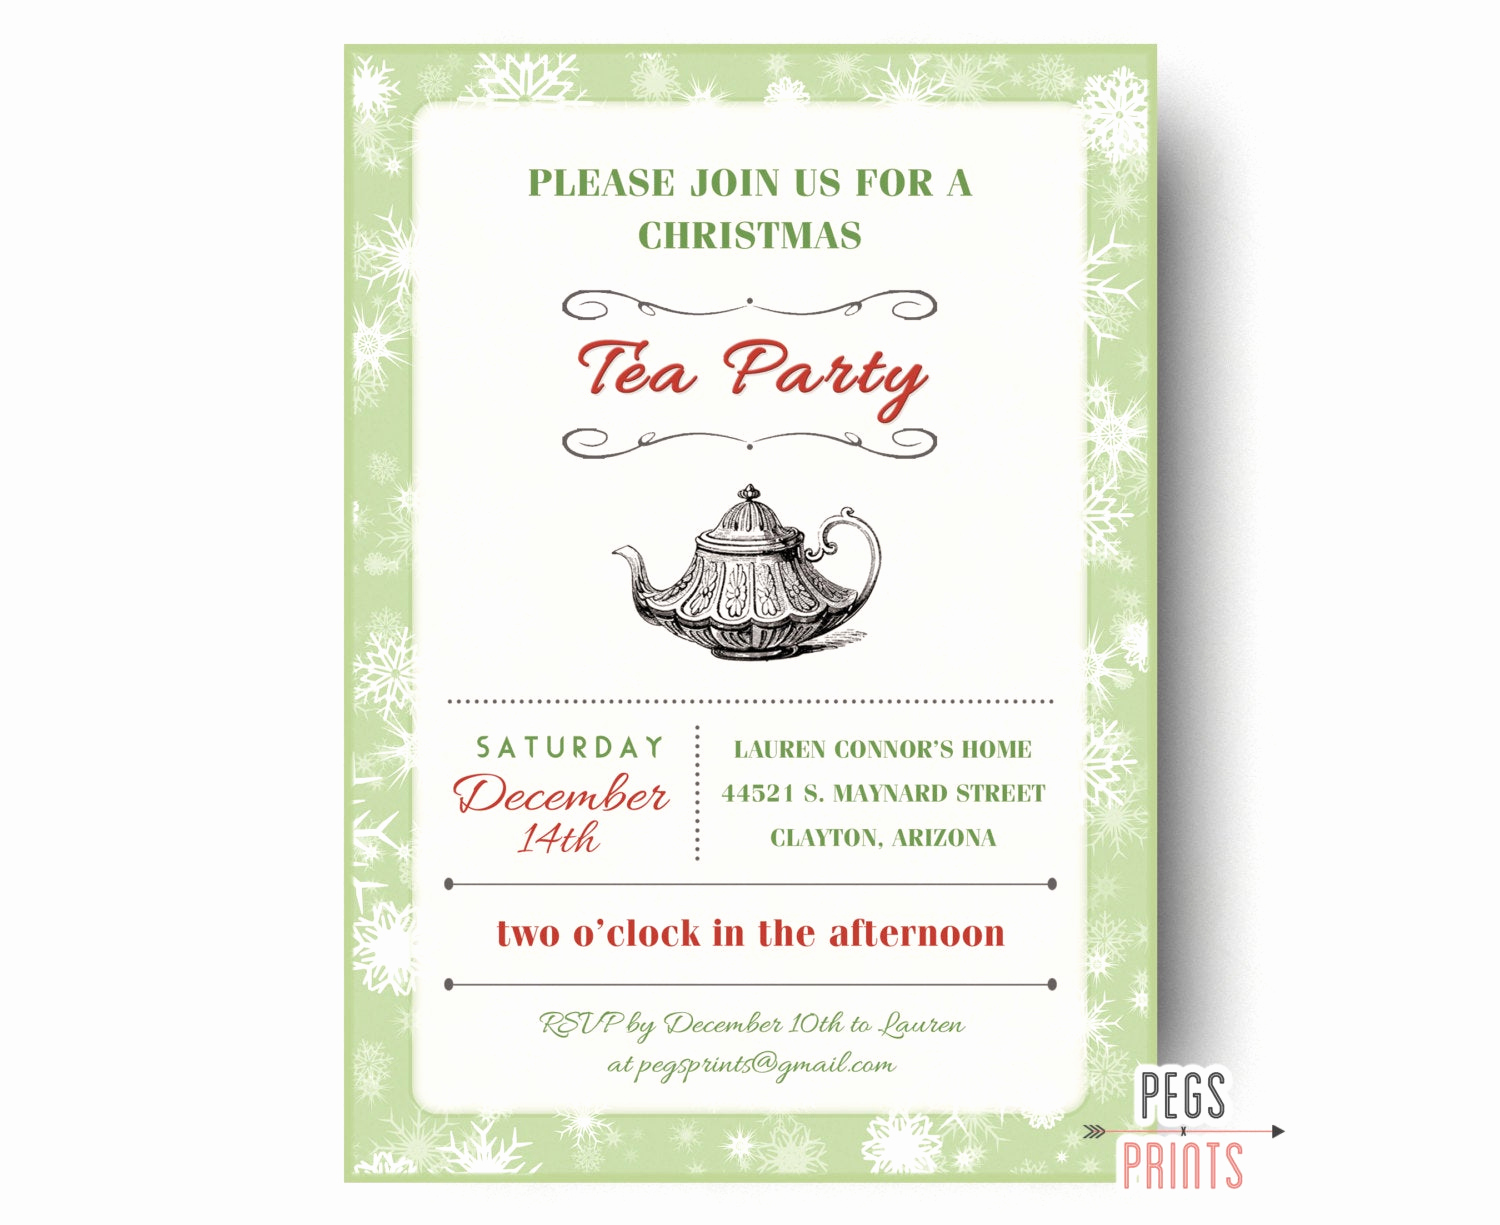 Invitation for Tea Party Inspirational Christmas Tea Party Invitation Printable Holiday Tea Party